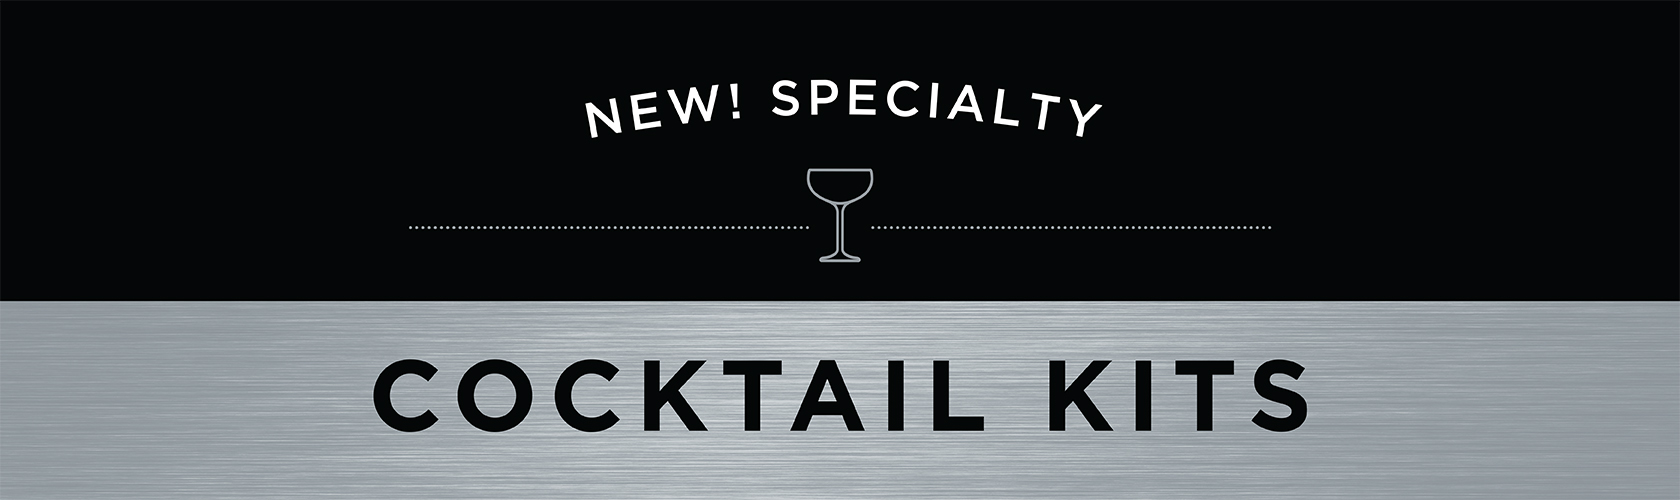 New! Specialty Cocktail Kits.